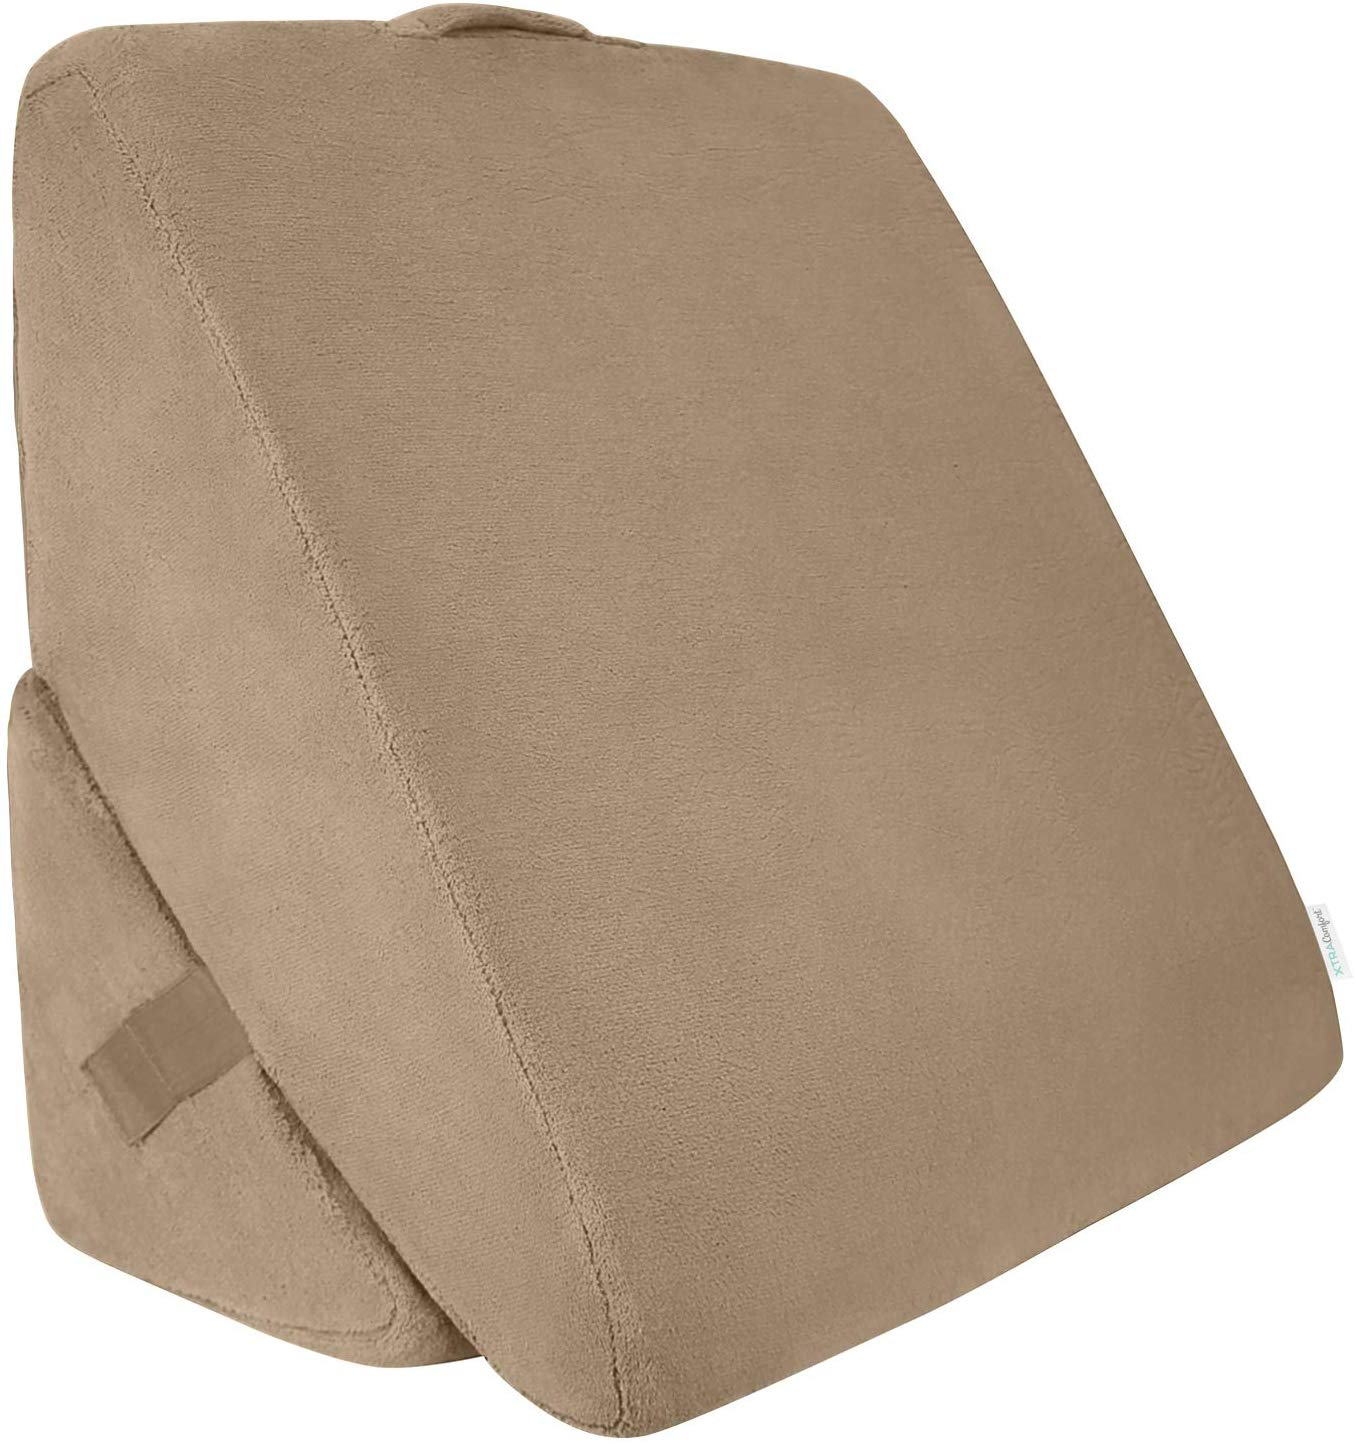 Xtra-Comfort Best Reading Pillow review by www.dailysleep.org